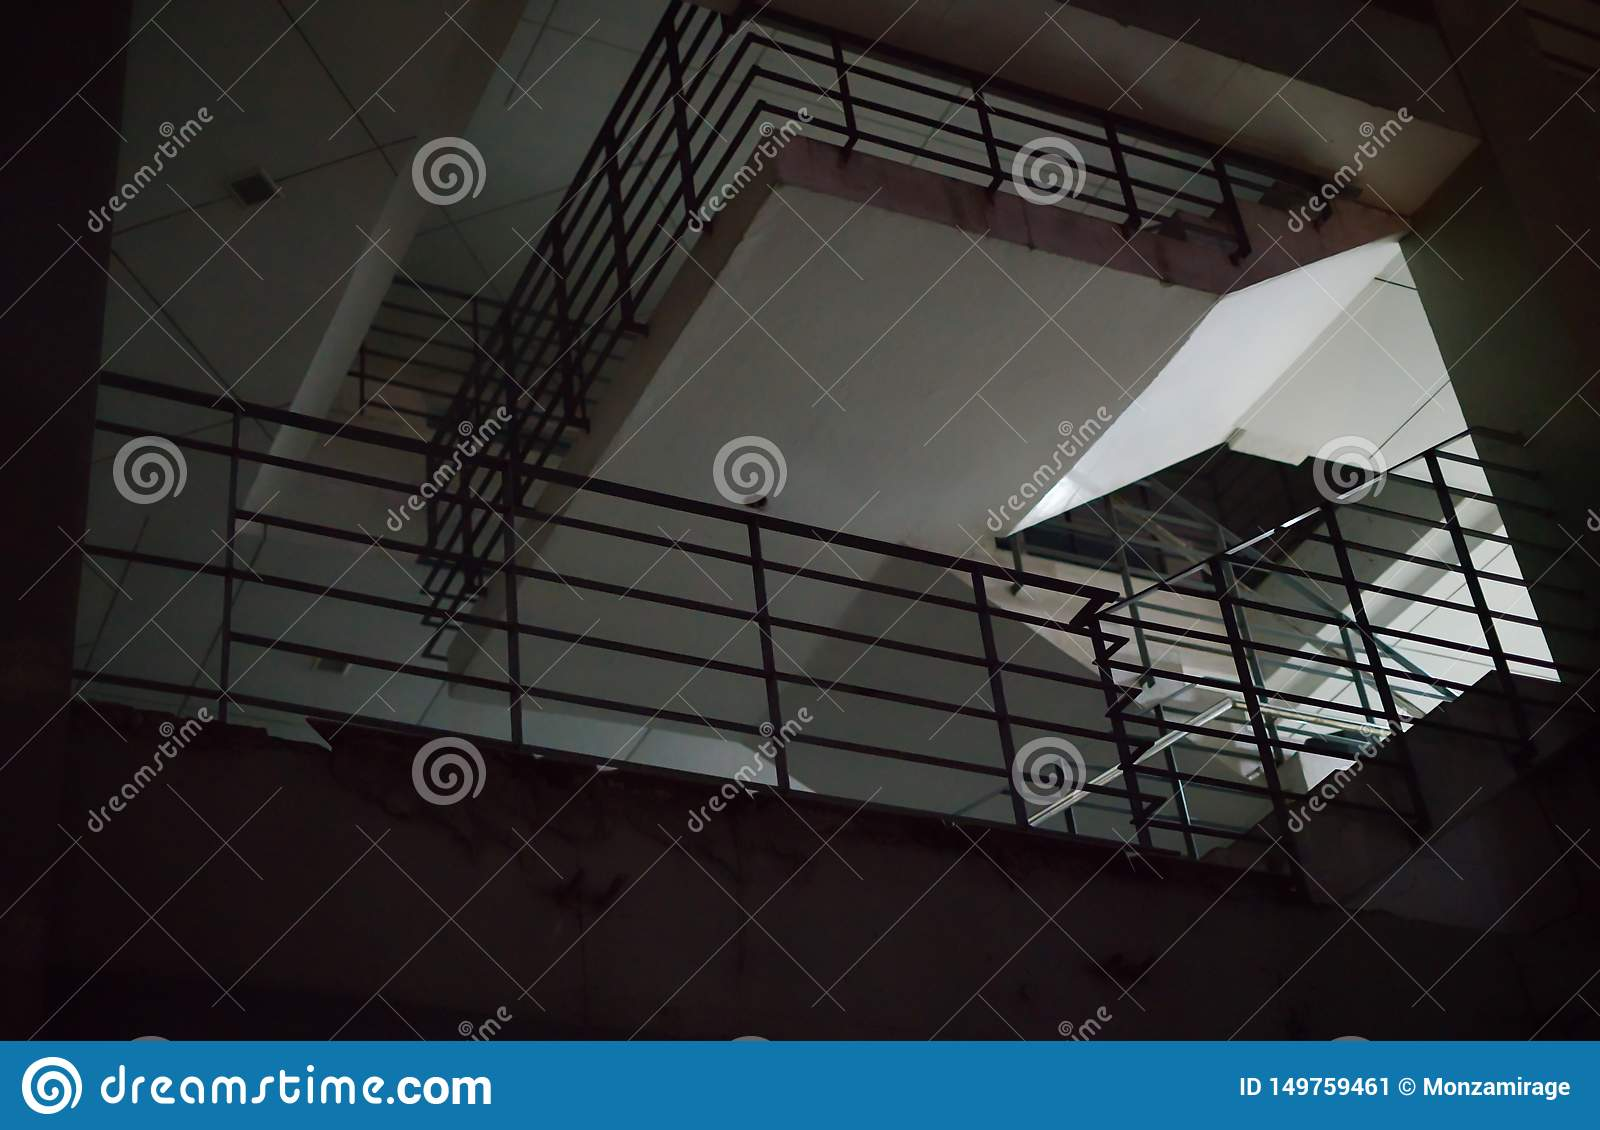 A Building Night Scene with Railings to create a mood.